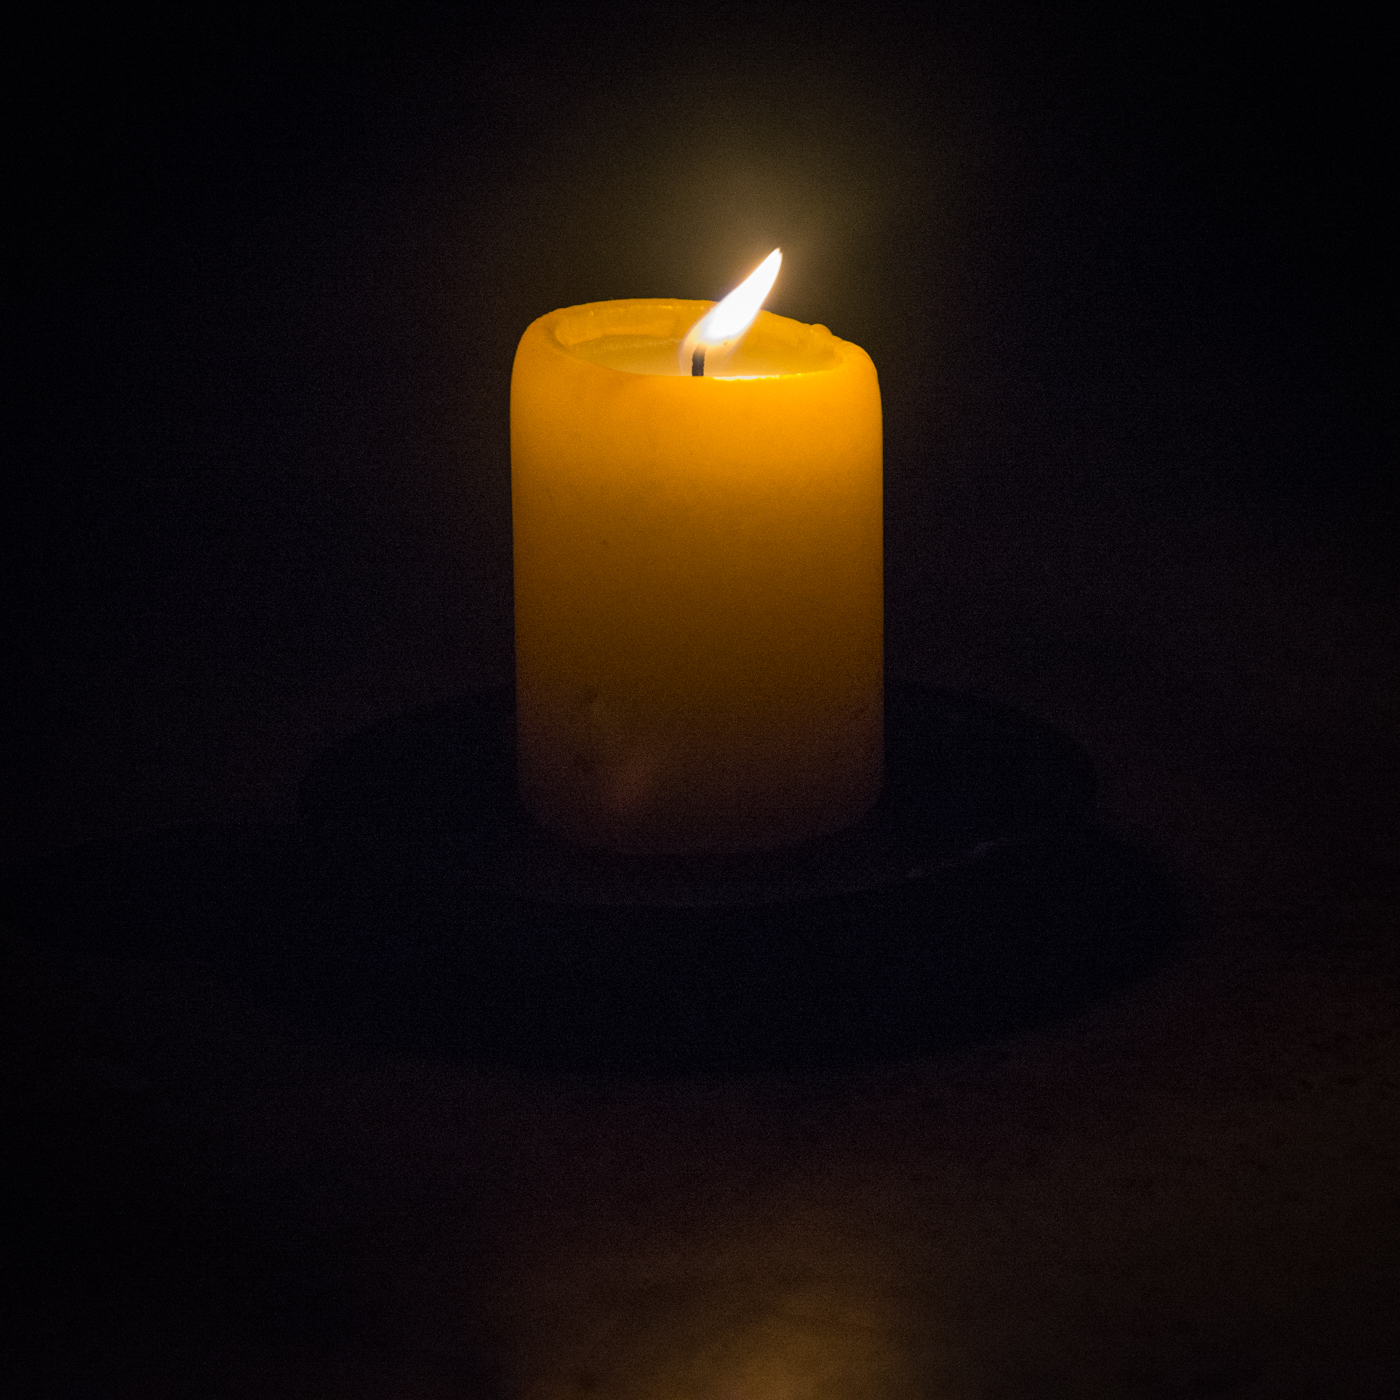 candle in the dark - photo #9